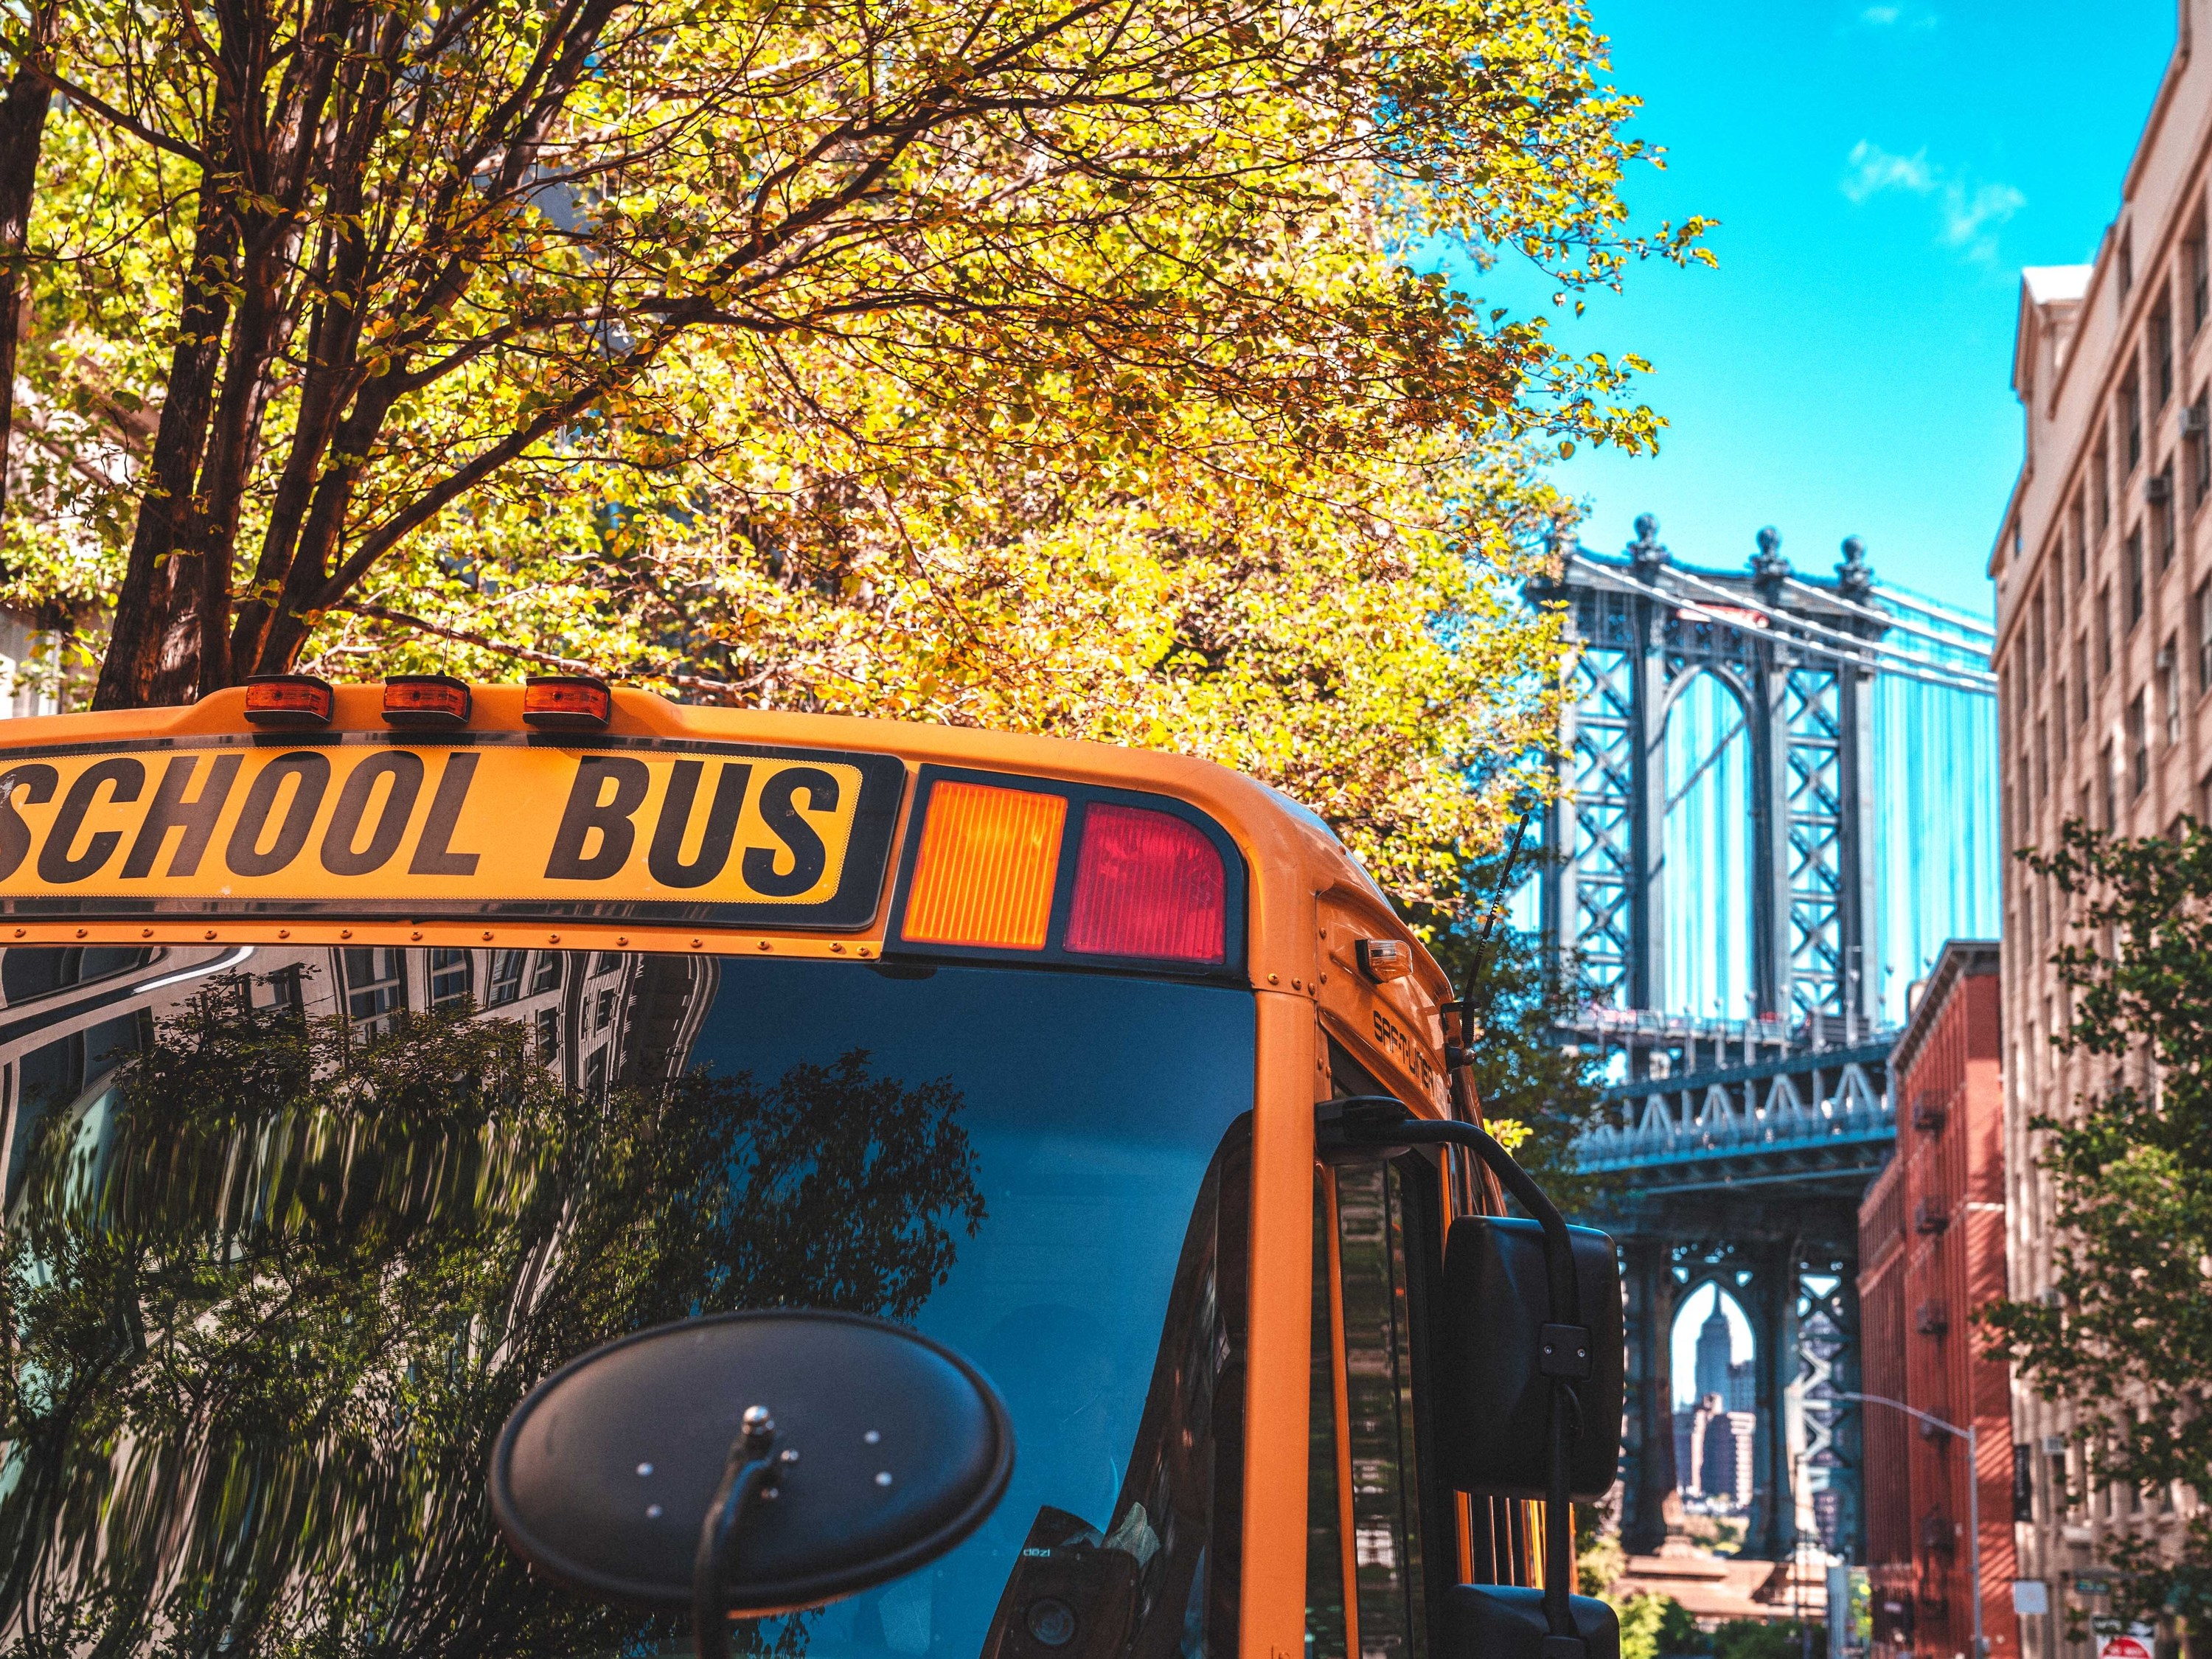 School bus in brooklyn